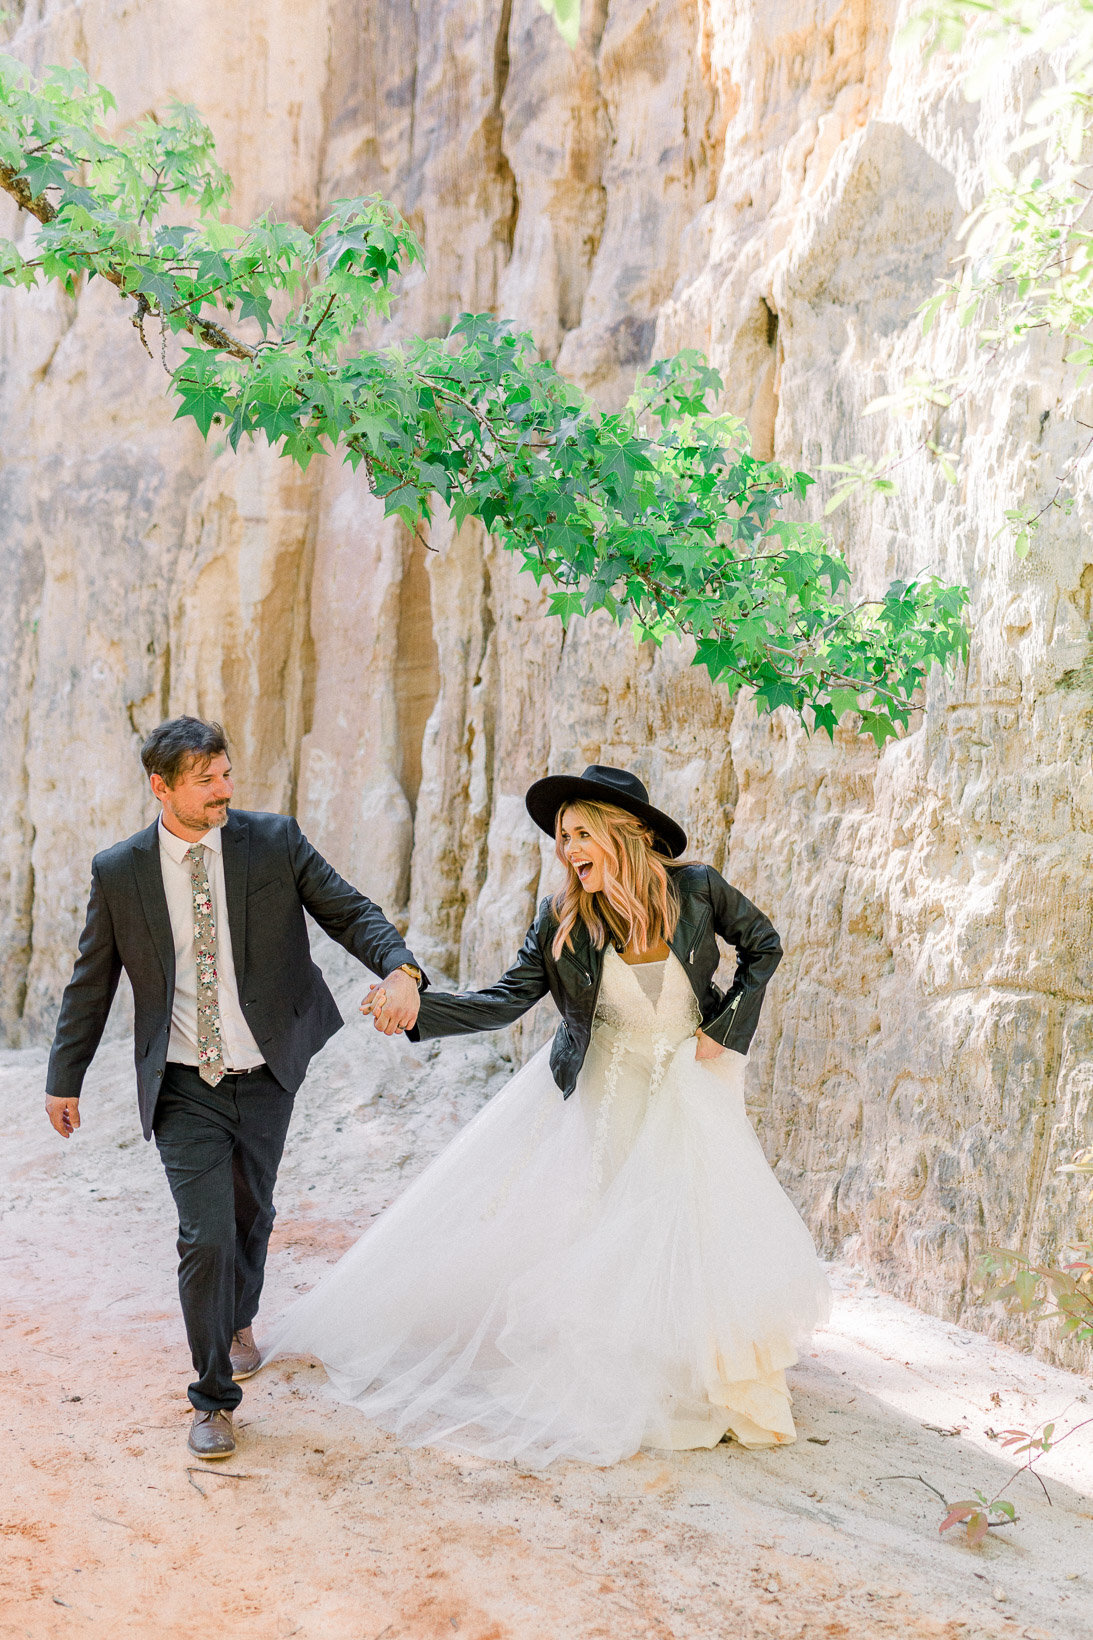 providence-canyon-wedding-elopement-adventure-hiking-georgia-arizona-15